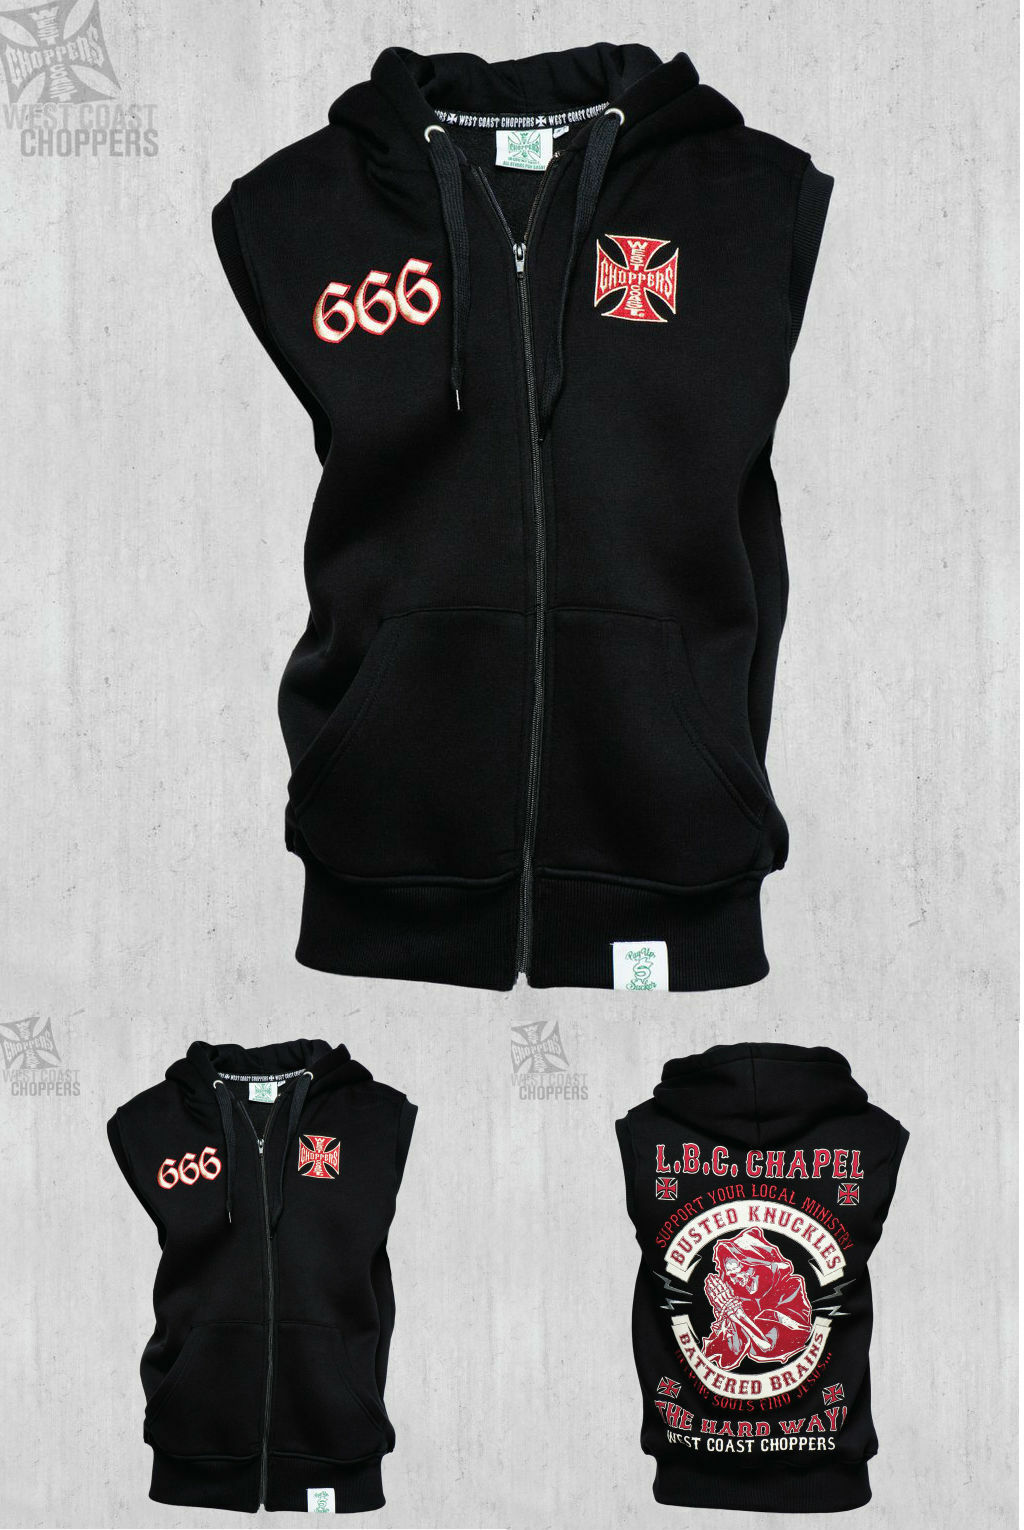 WEST COAST CHOPPERS CHAPEL 666 SLEEVELESS ZIP HOODY BRAND NEW    | Ab dem neuesten Modell